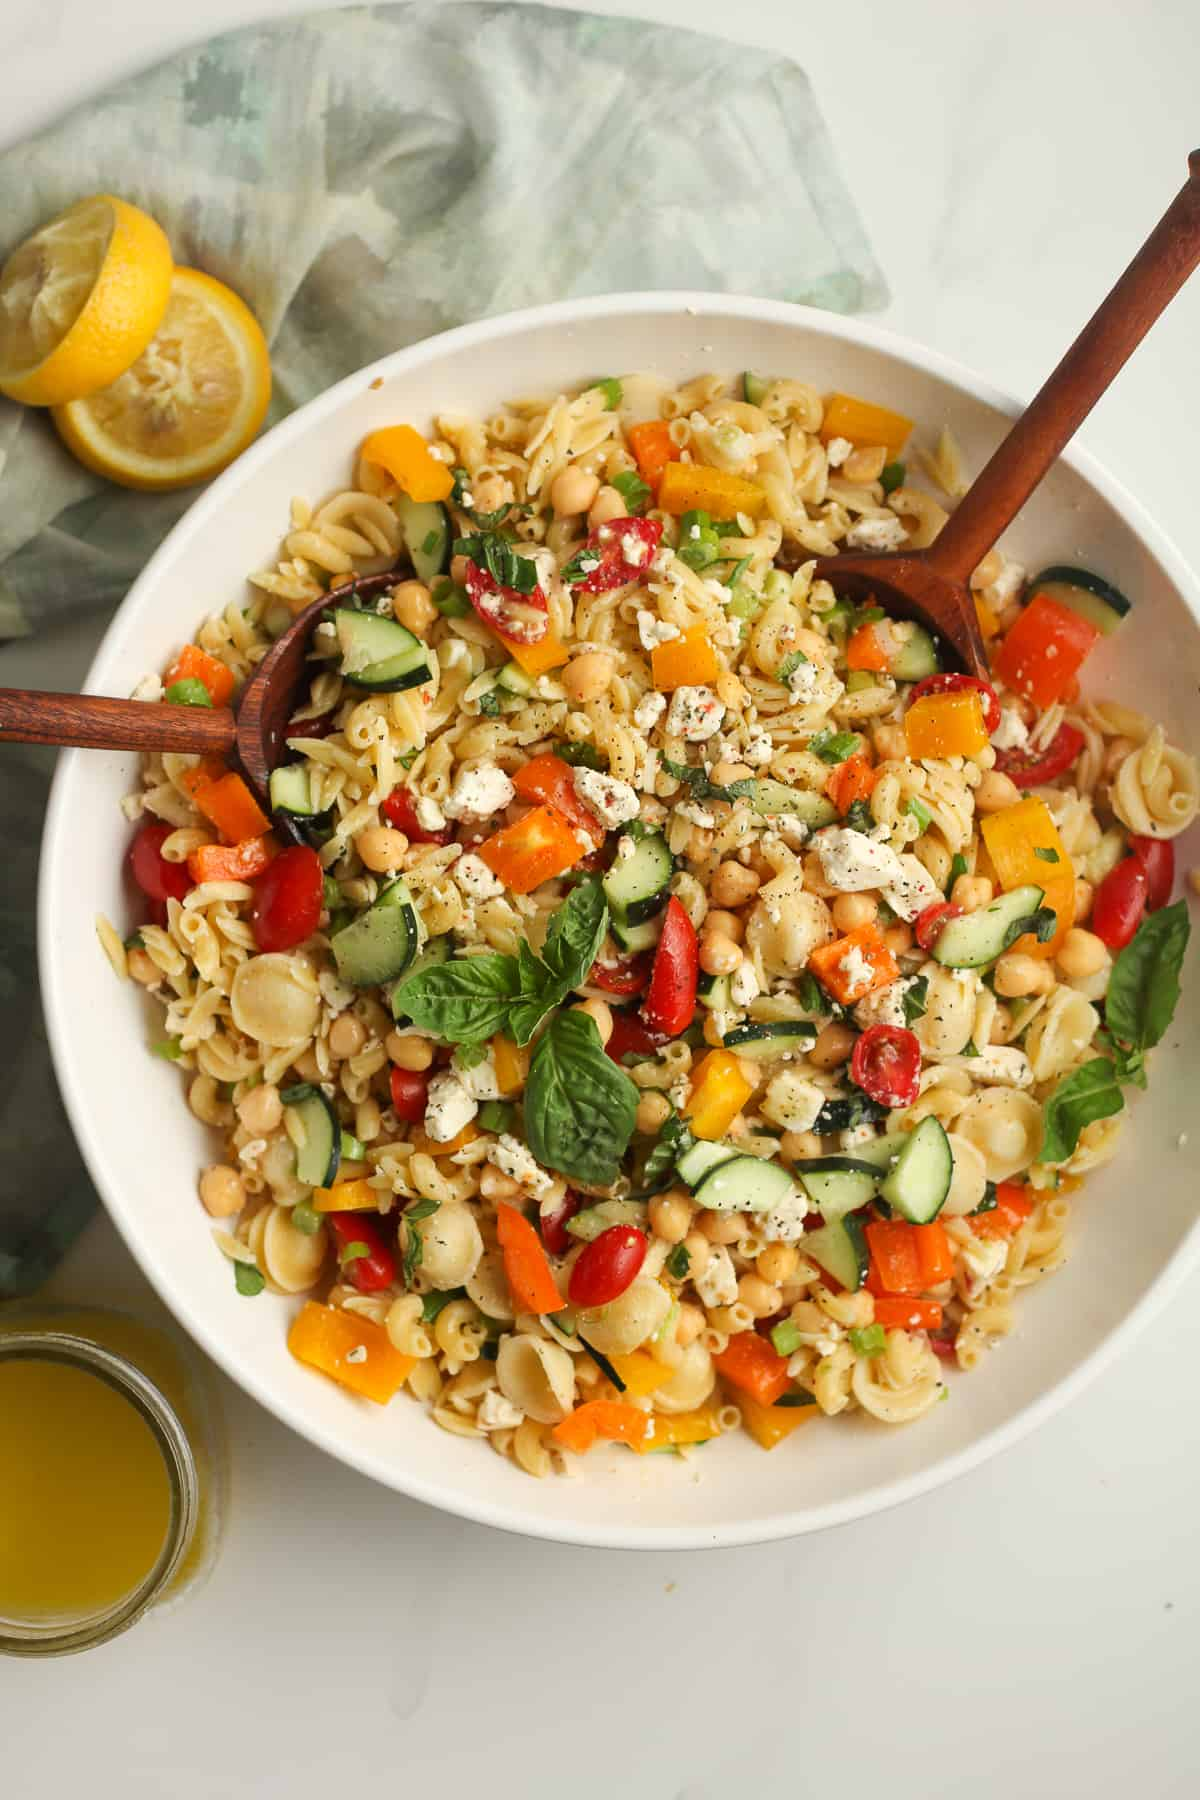 Overhead shot of a large bowl of summer pasta salad with wooden spoons.